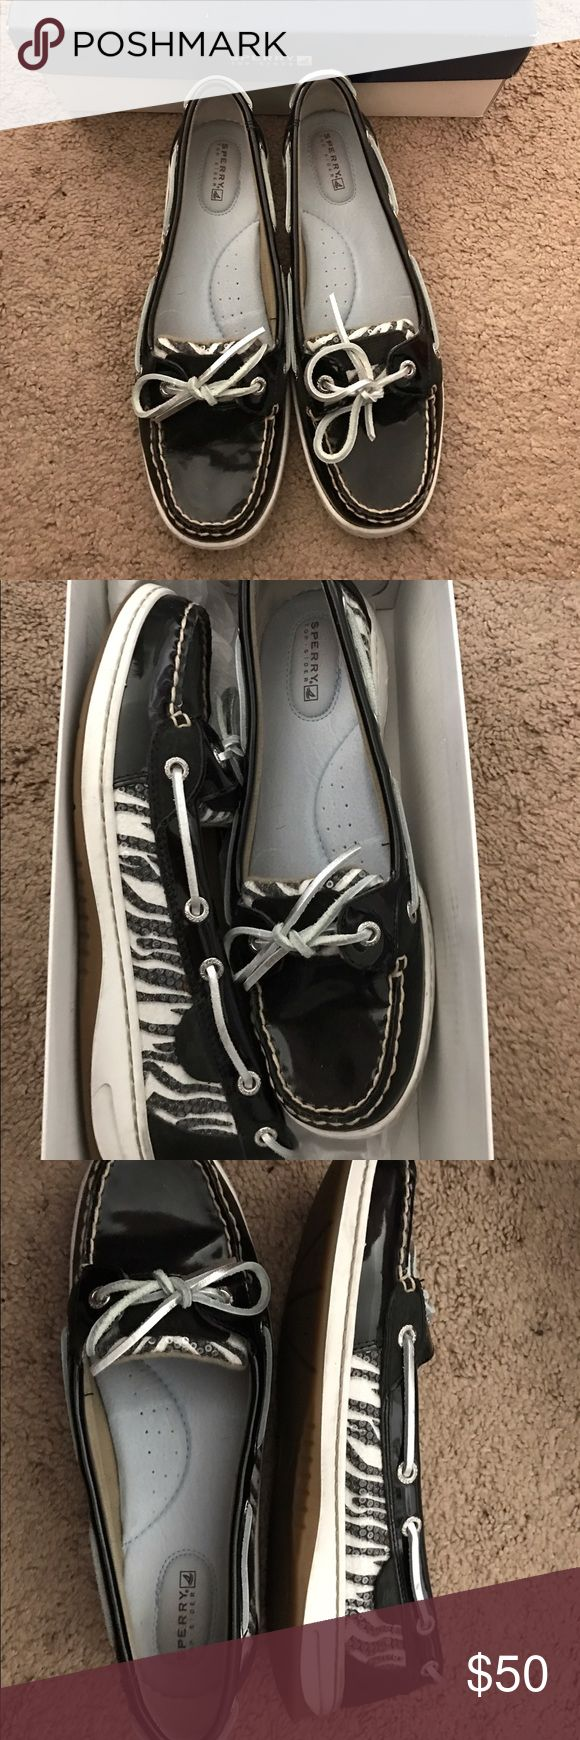 Sperry Angelfish Black/Zebra boat shoes. Size 9M Used, like new, Sperry Angelfish Black/Zebra boat shoes. Size 9M.  Barely worn. Still has original Sperry shoe box. Sperry Top-Sider Shoes Flats & Loafers